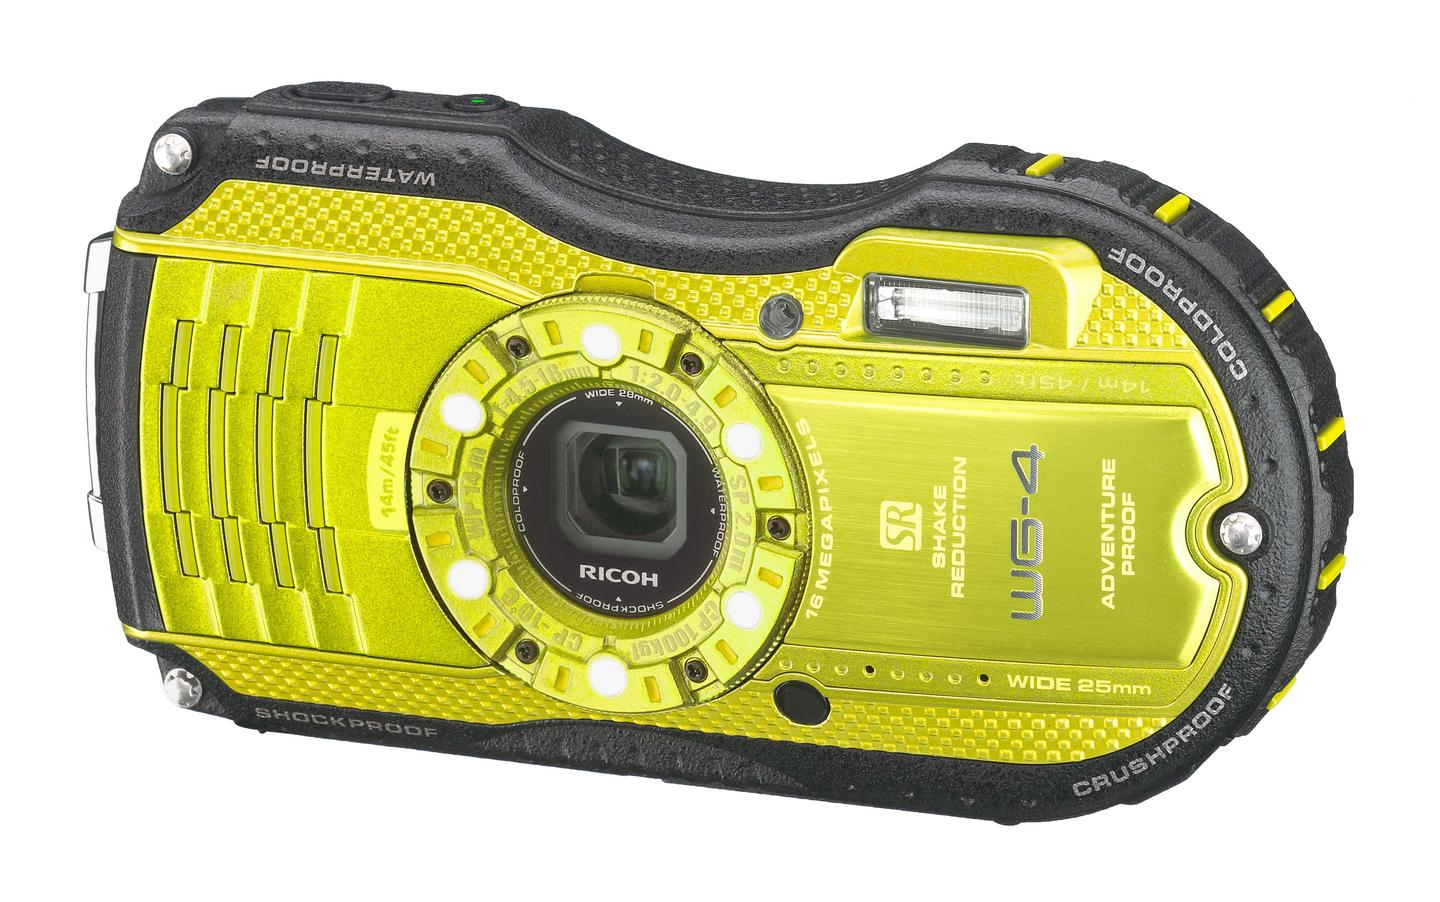 The Ricoh WG-4 and Ricoh WG-4 GPS feature a 16-megapixel 1/2.3-inch CMOS sensor with sensor-shift shake reduction